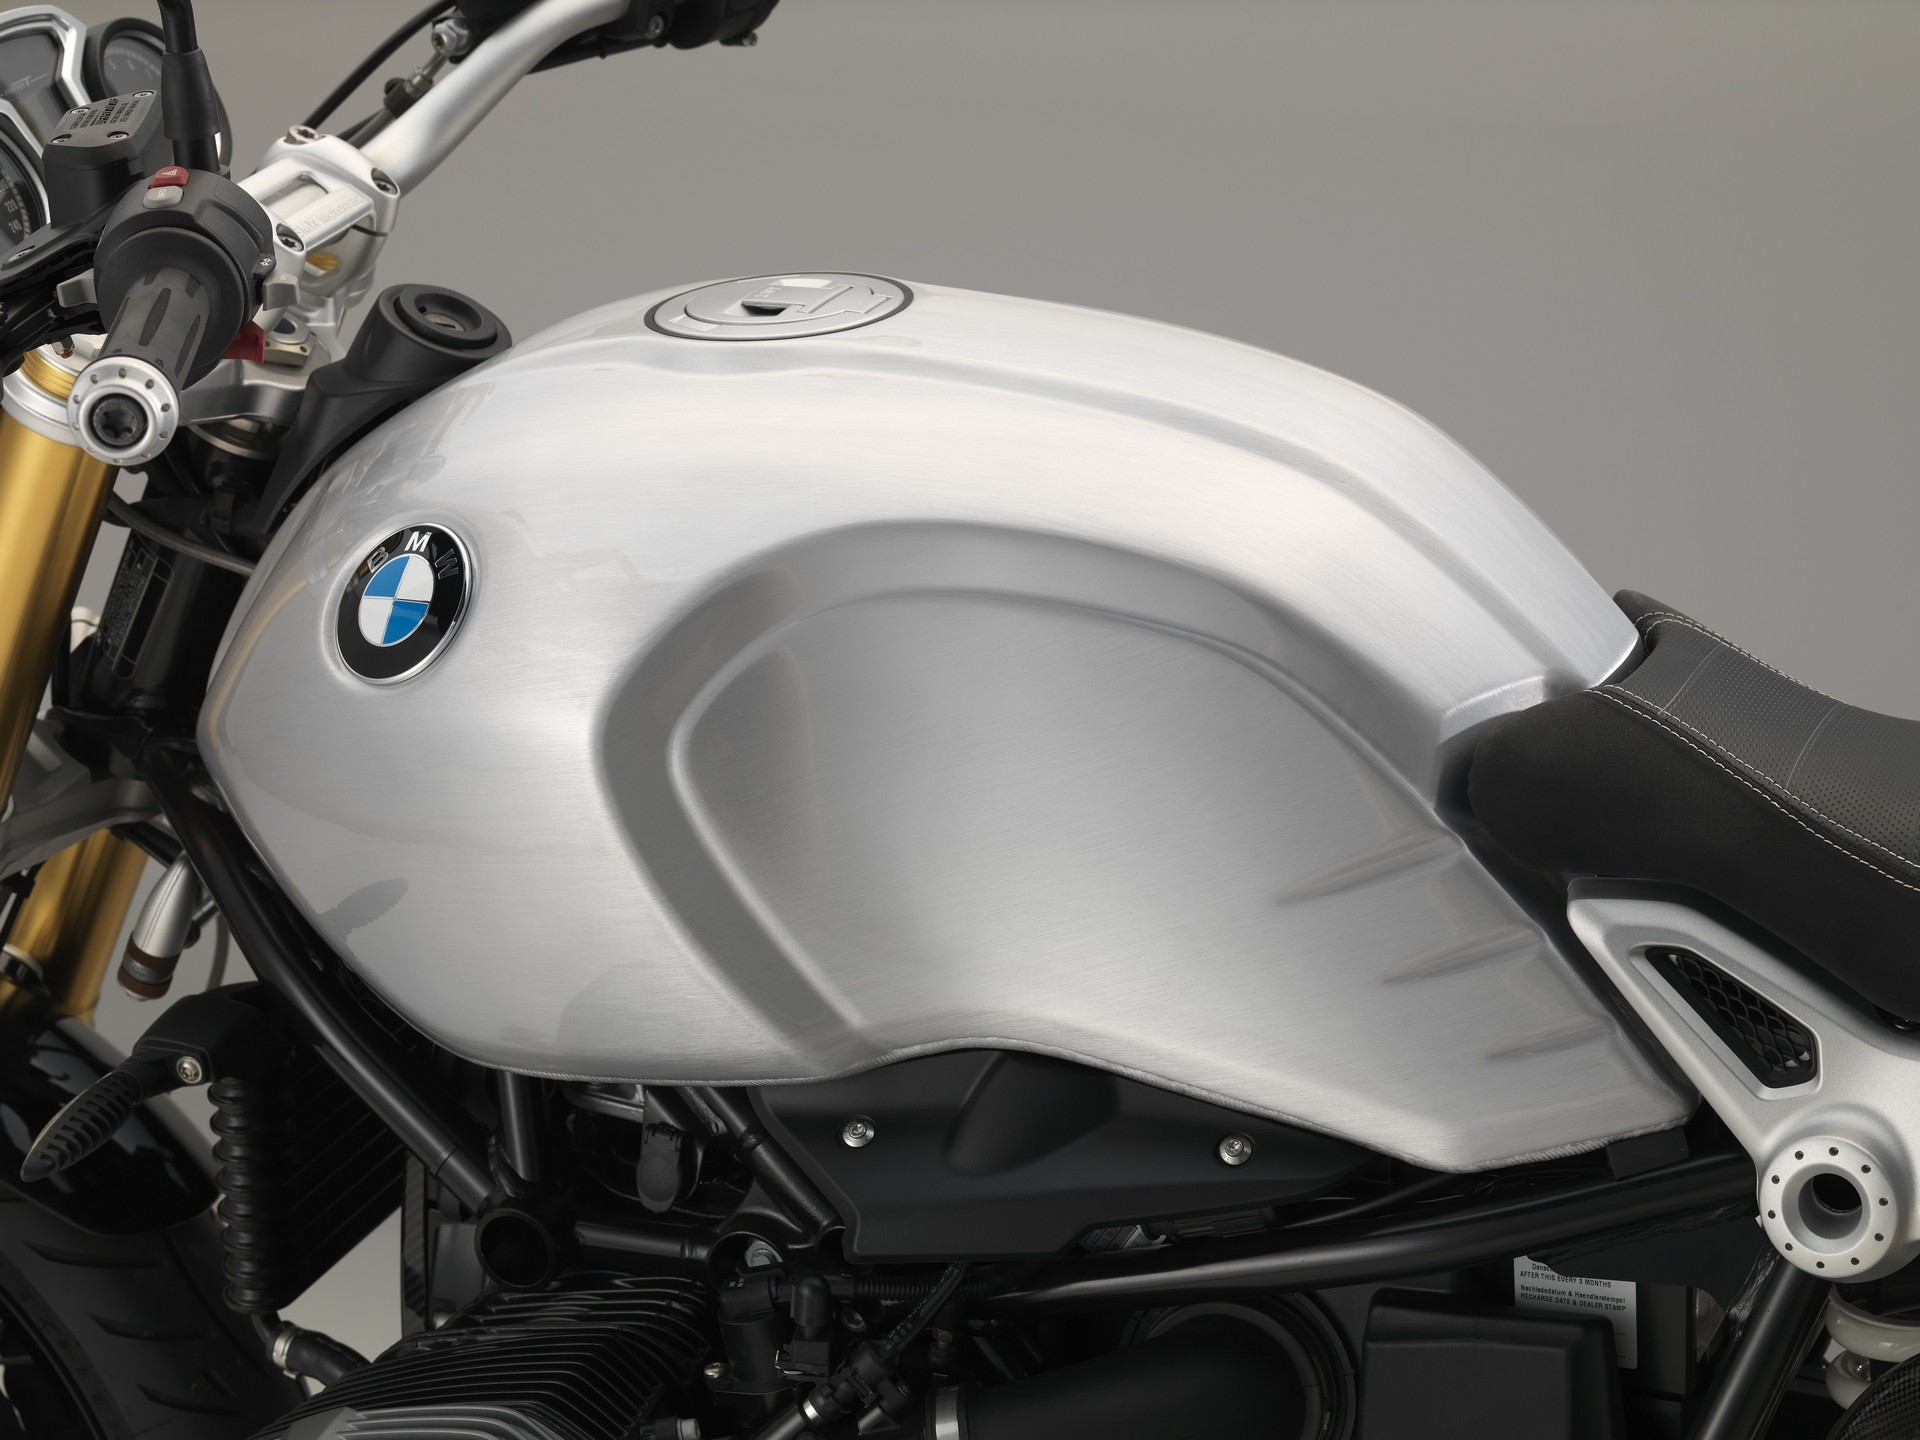 Bmw Introduces Hand Brushed Aluminium Tanks For The R